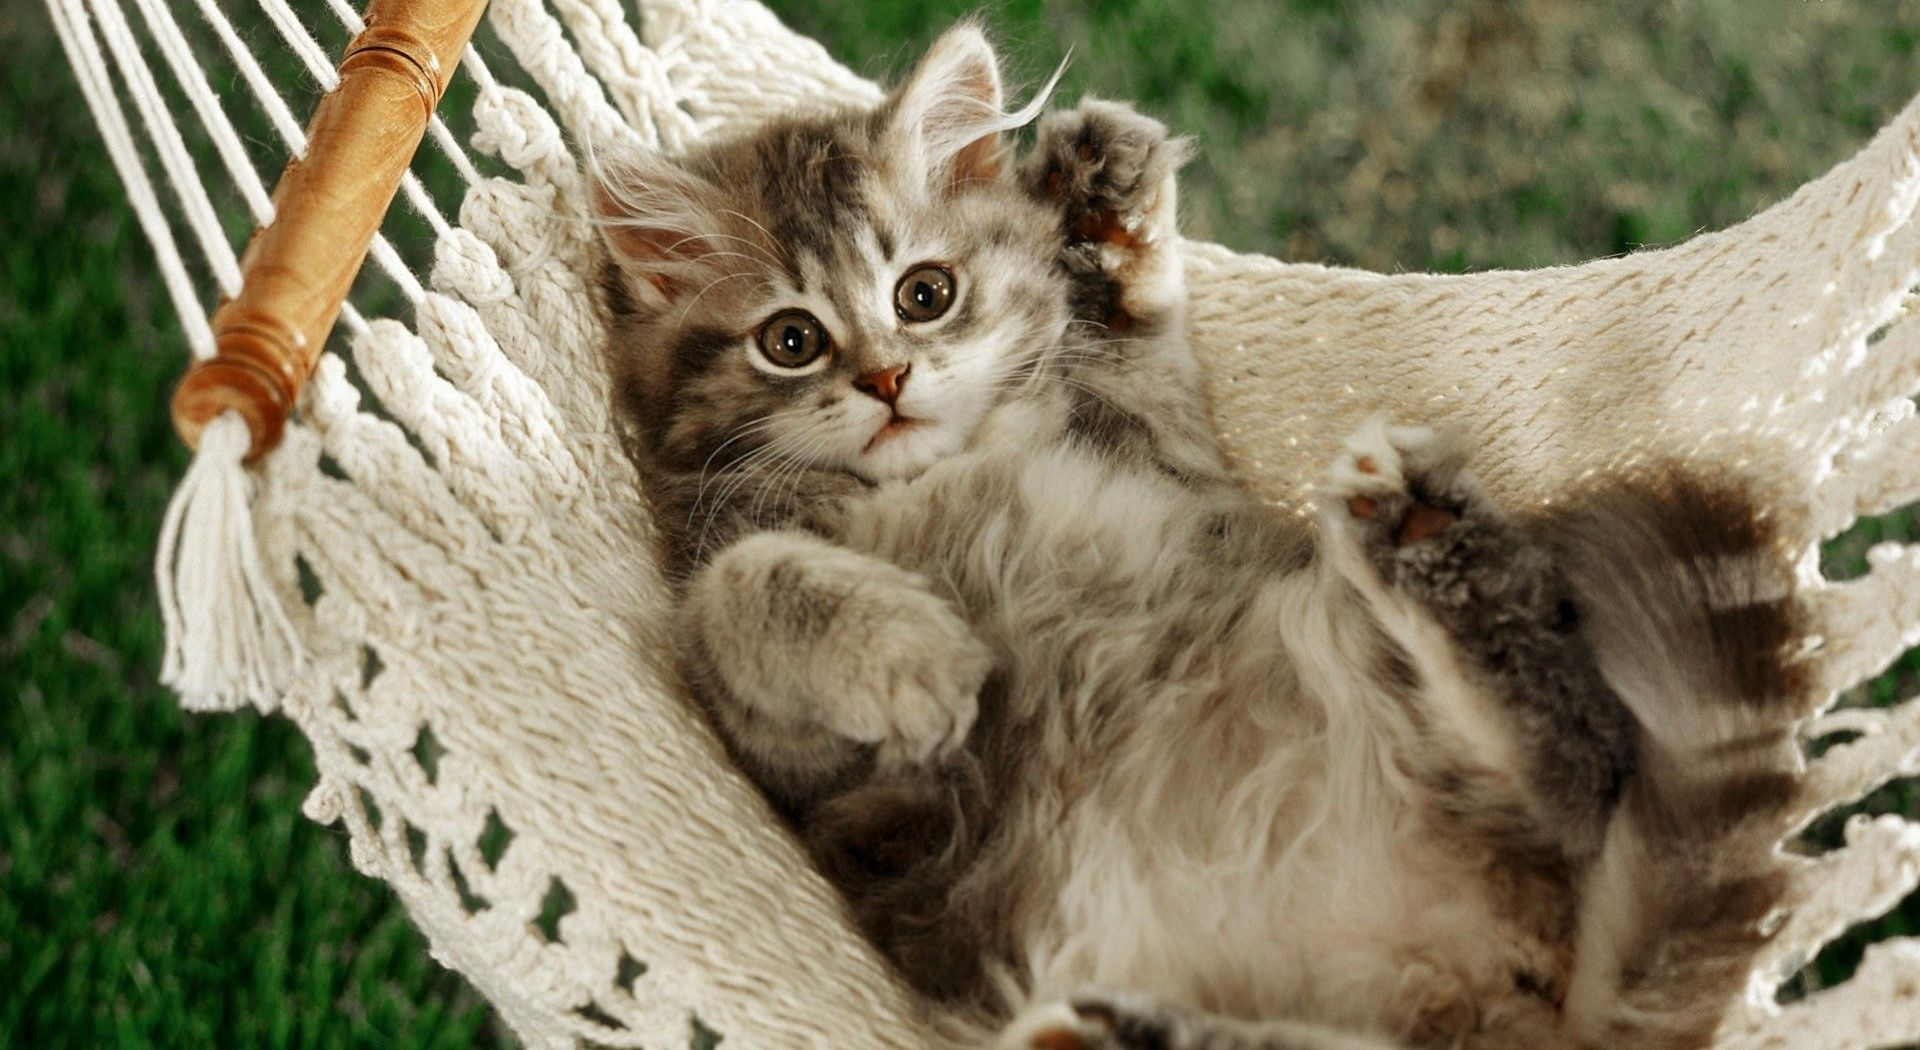 Pets In A Hammock Funny Cat In A Hammock Wallpapers And Images Kittens Cutest Cute Animals Kitten Wallpaper